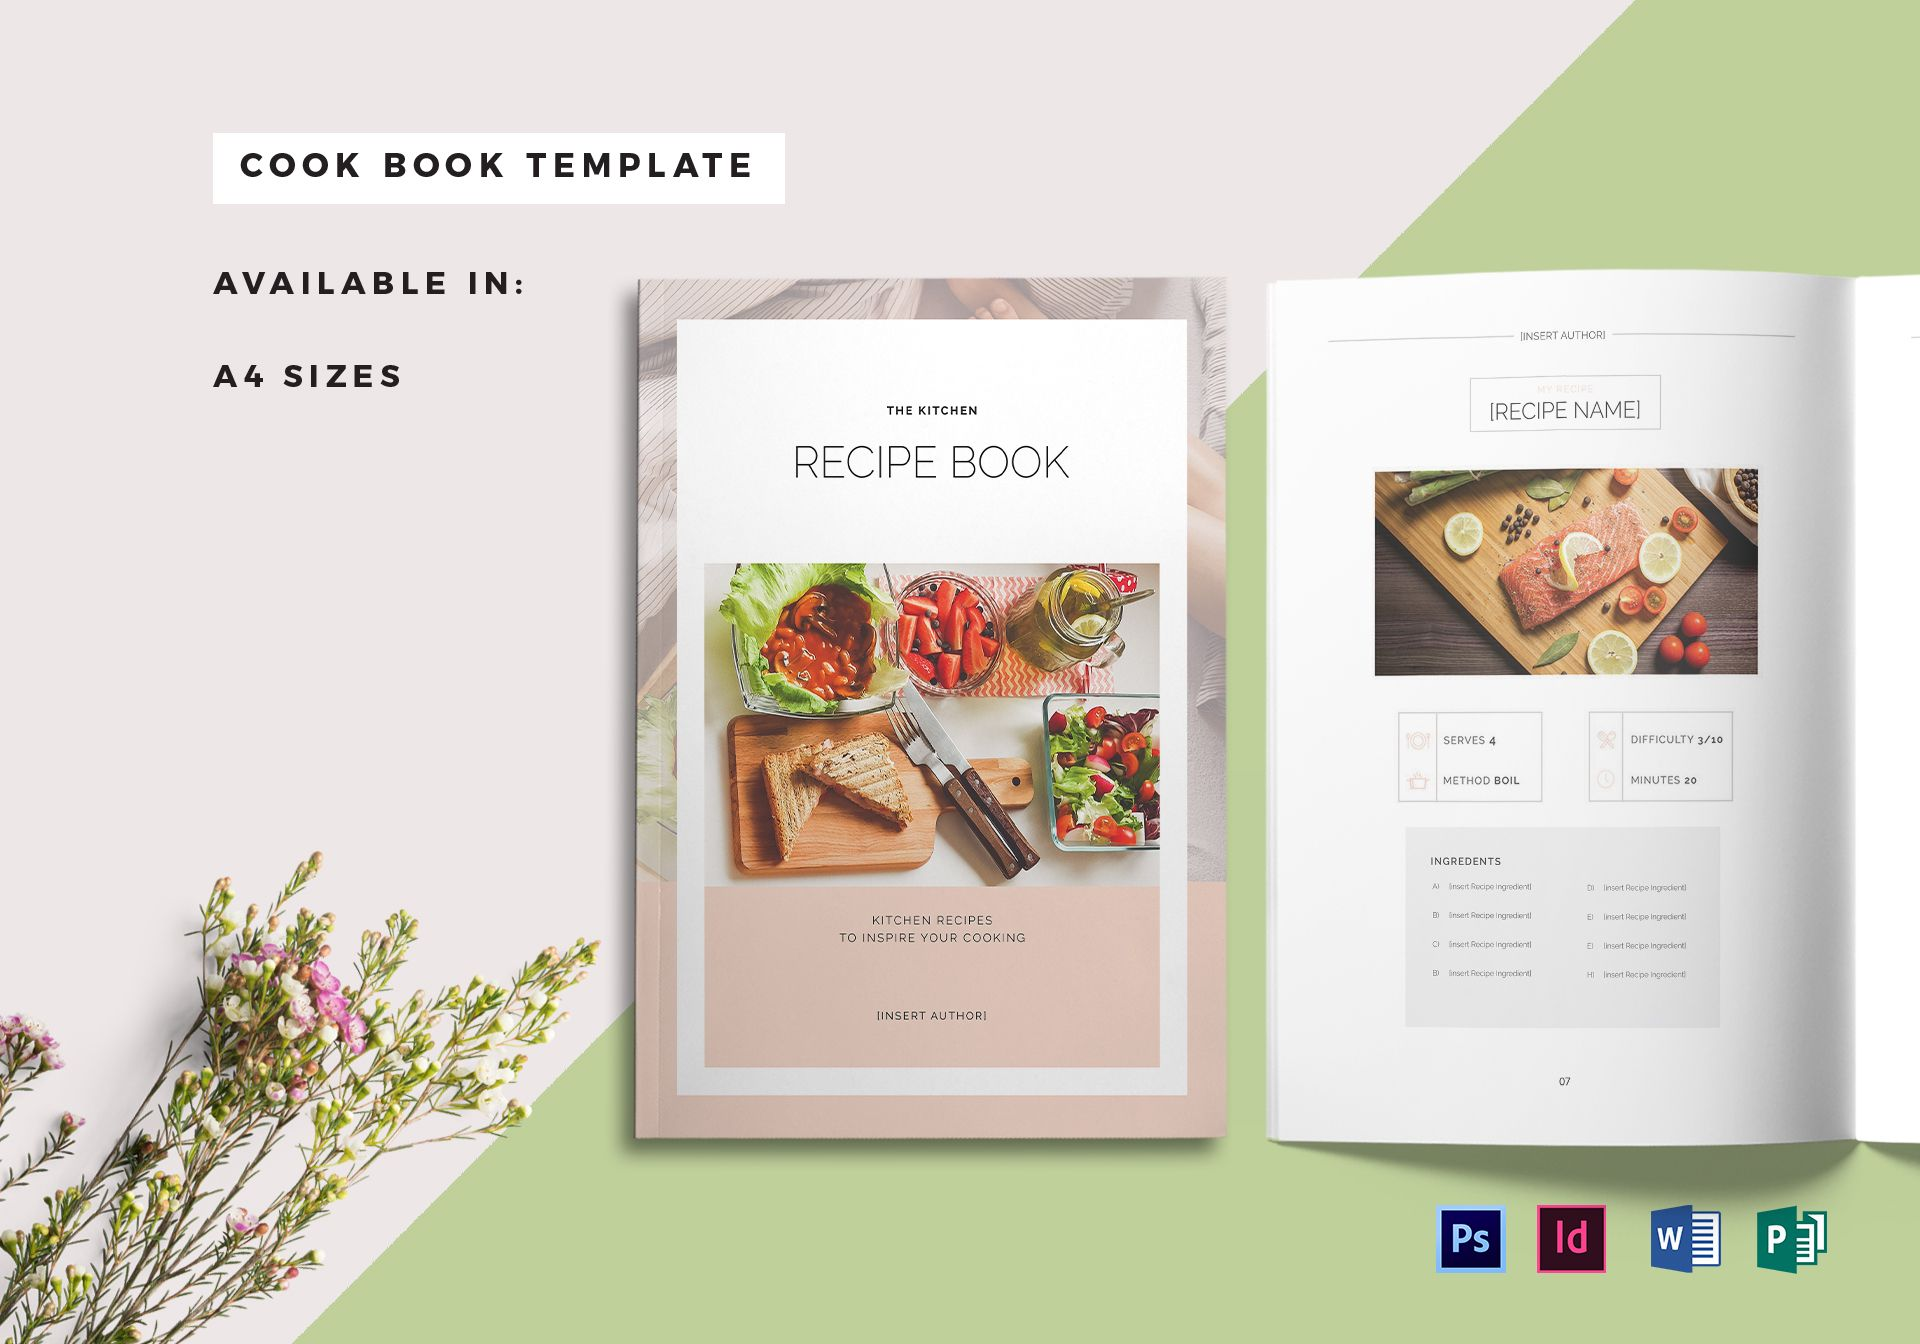 free online cookbook template - recipe book cover template in psd word publisher indesign